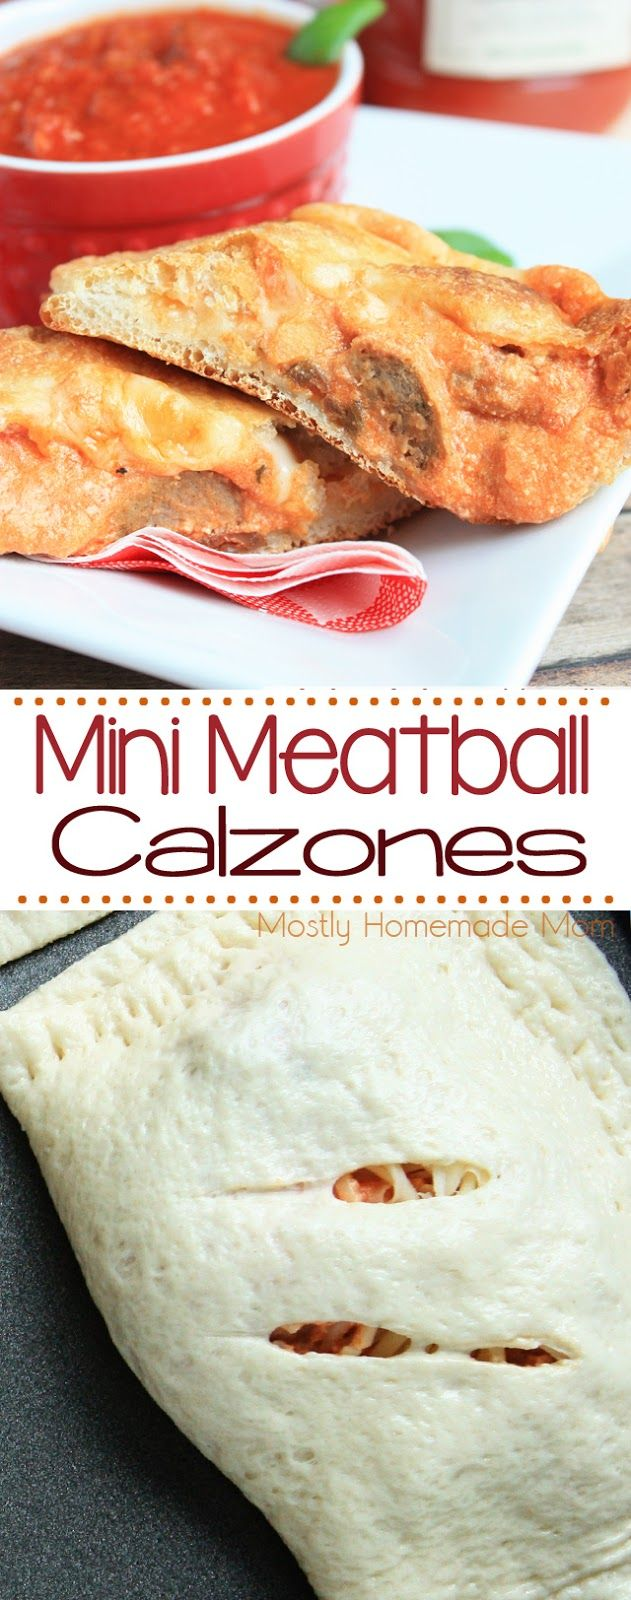 Mini Meatball Calzones - These homemade calzones are SO EASY to make any night of the week with premade pizza dough and Classico Riserva sauce! #ad (Homemade Italian Recipes)